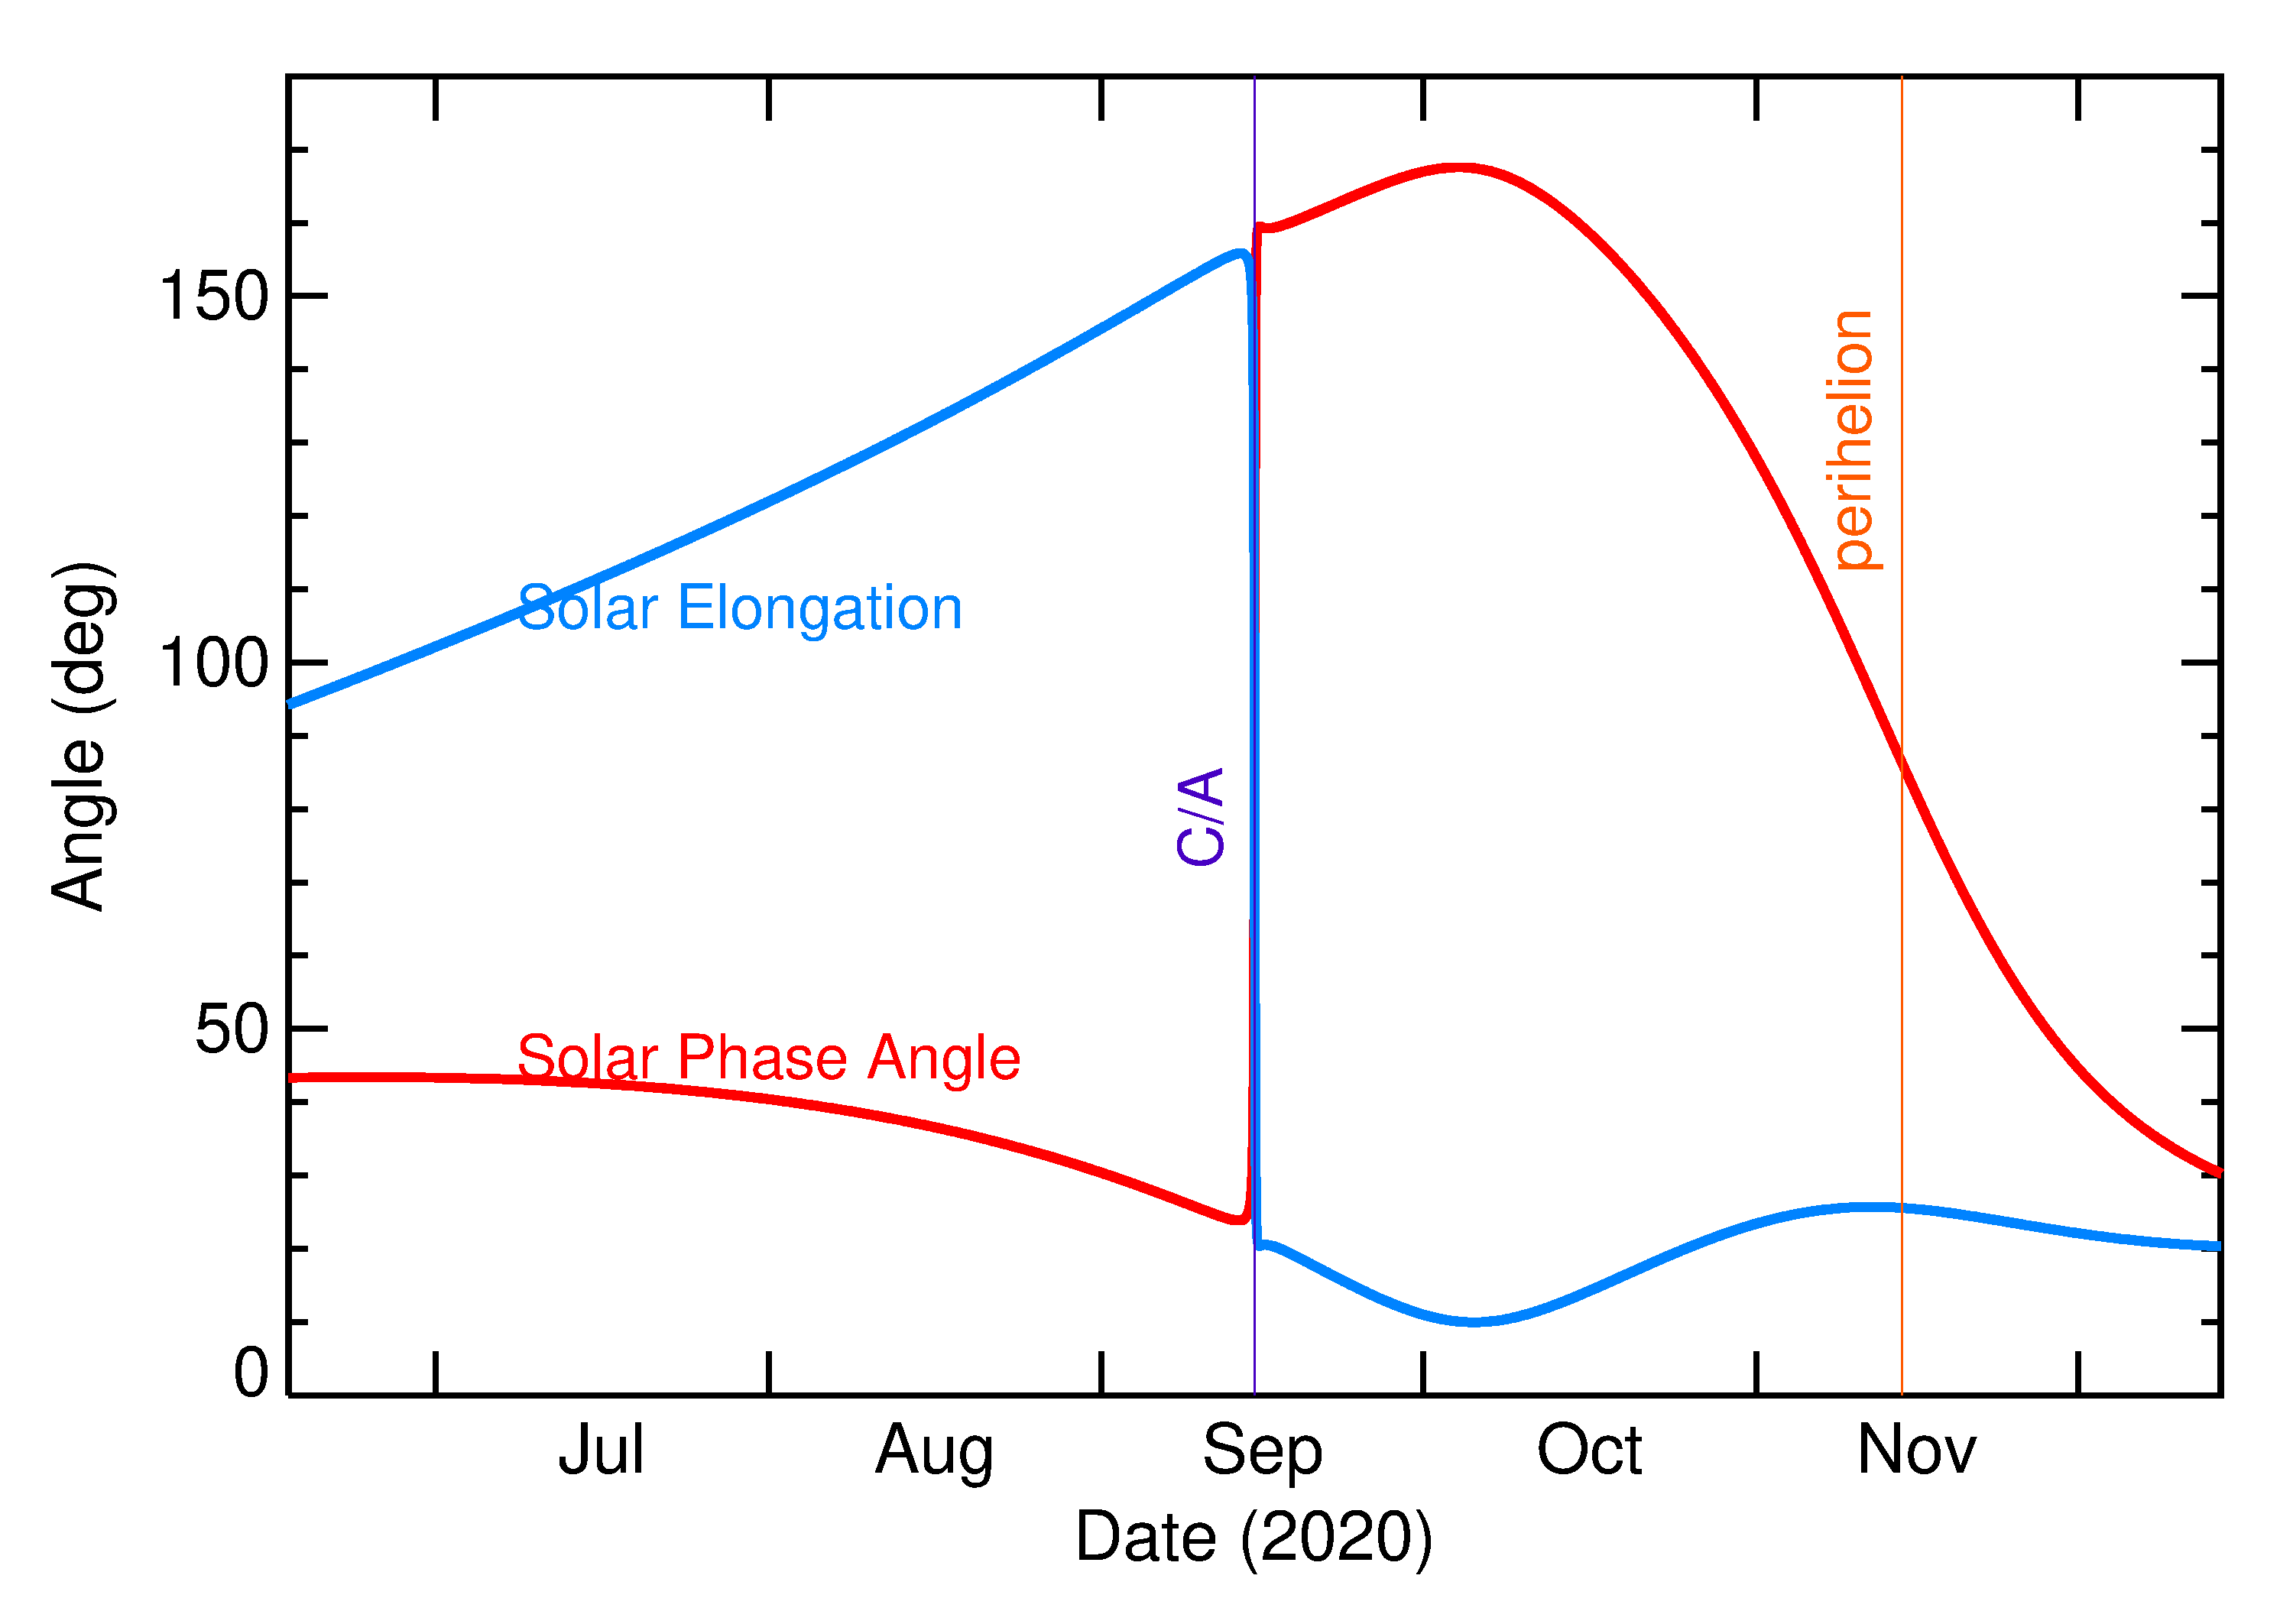 Solar Elongation and Solar Phase Angle of 2020 RF3 in the months around closest approach